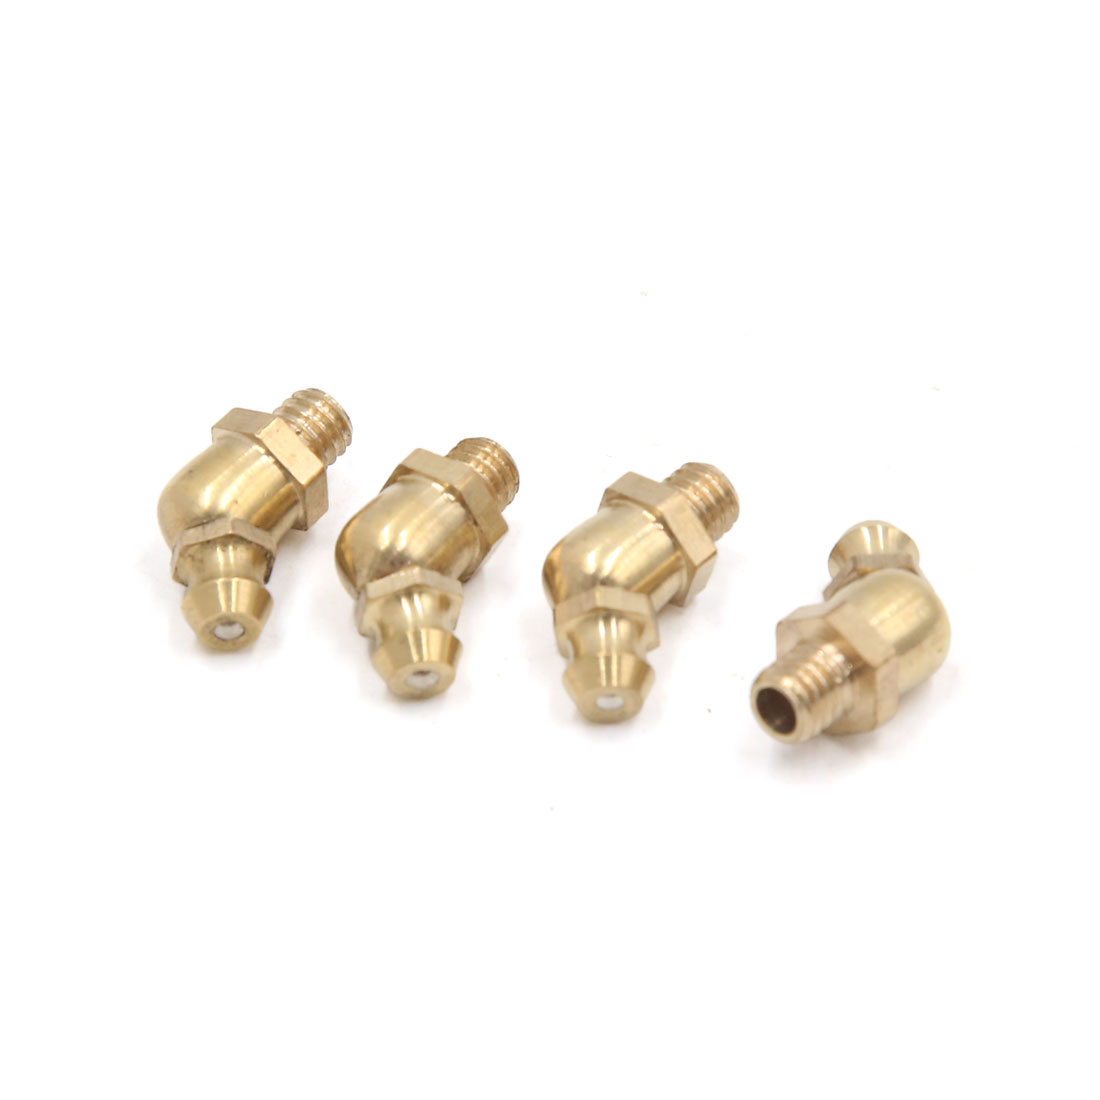 4 Pcs Brass M6 x 1mm Thread 45 Degree Angle Grease Zerk Nipple Fitting for Car